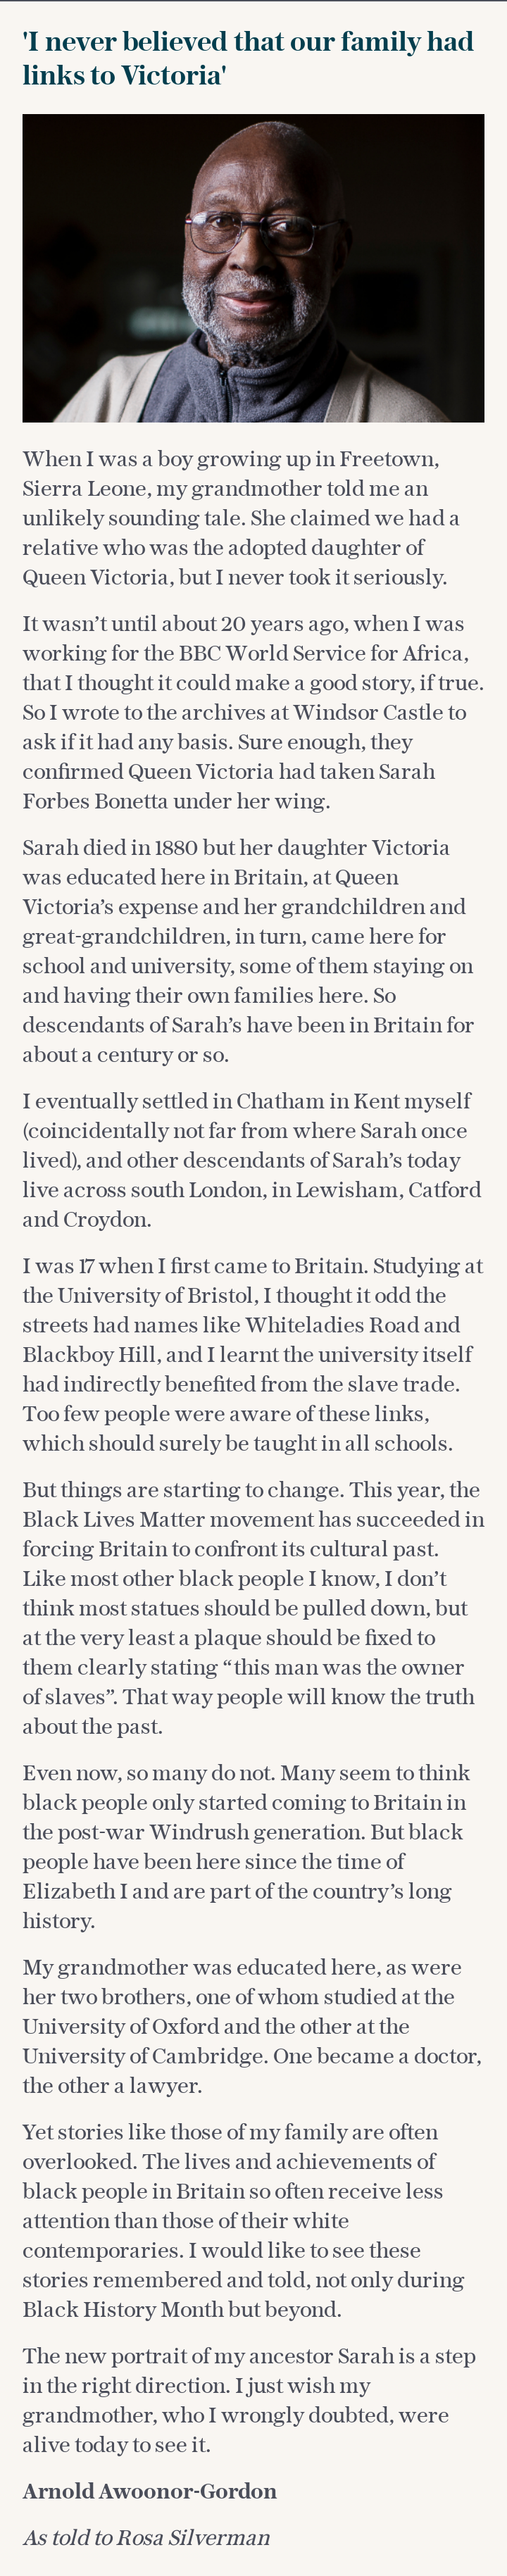 Arnold Awoonor-Gordon: 'There have been black people in Britain since Tudor times'